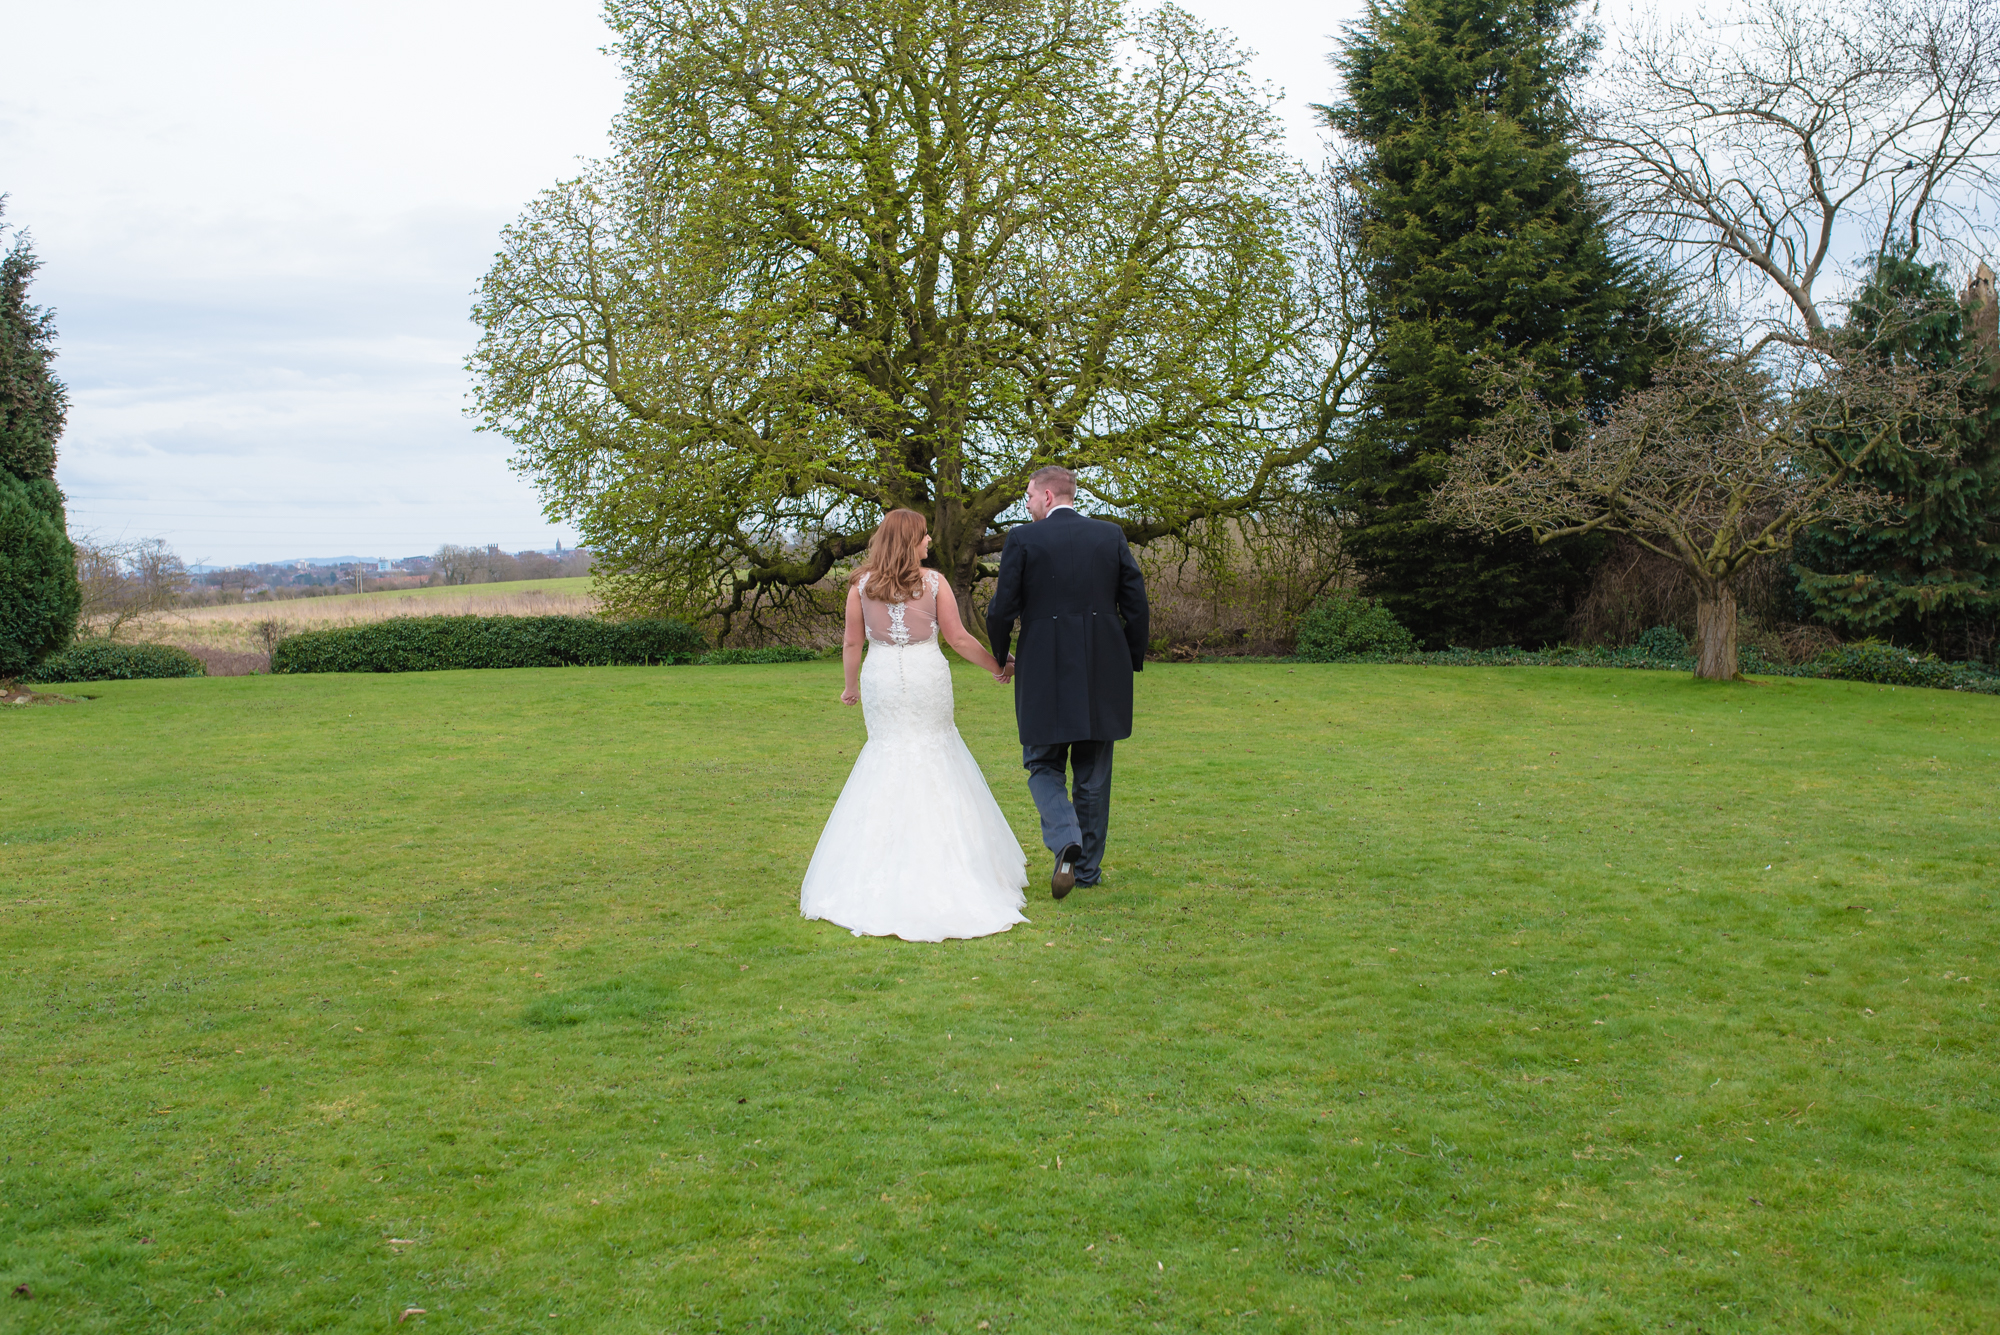 The bride and groom walking away from their wedding venue towards fields in the distance.